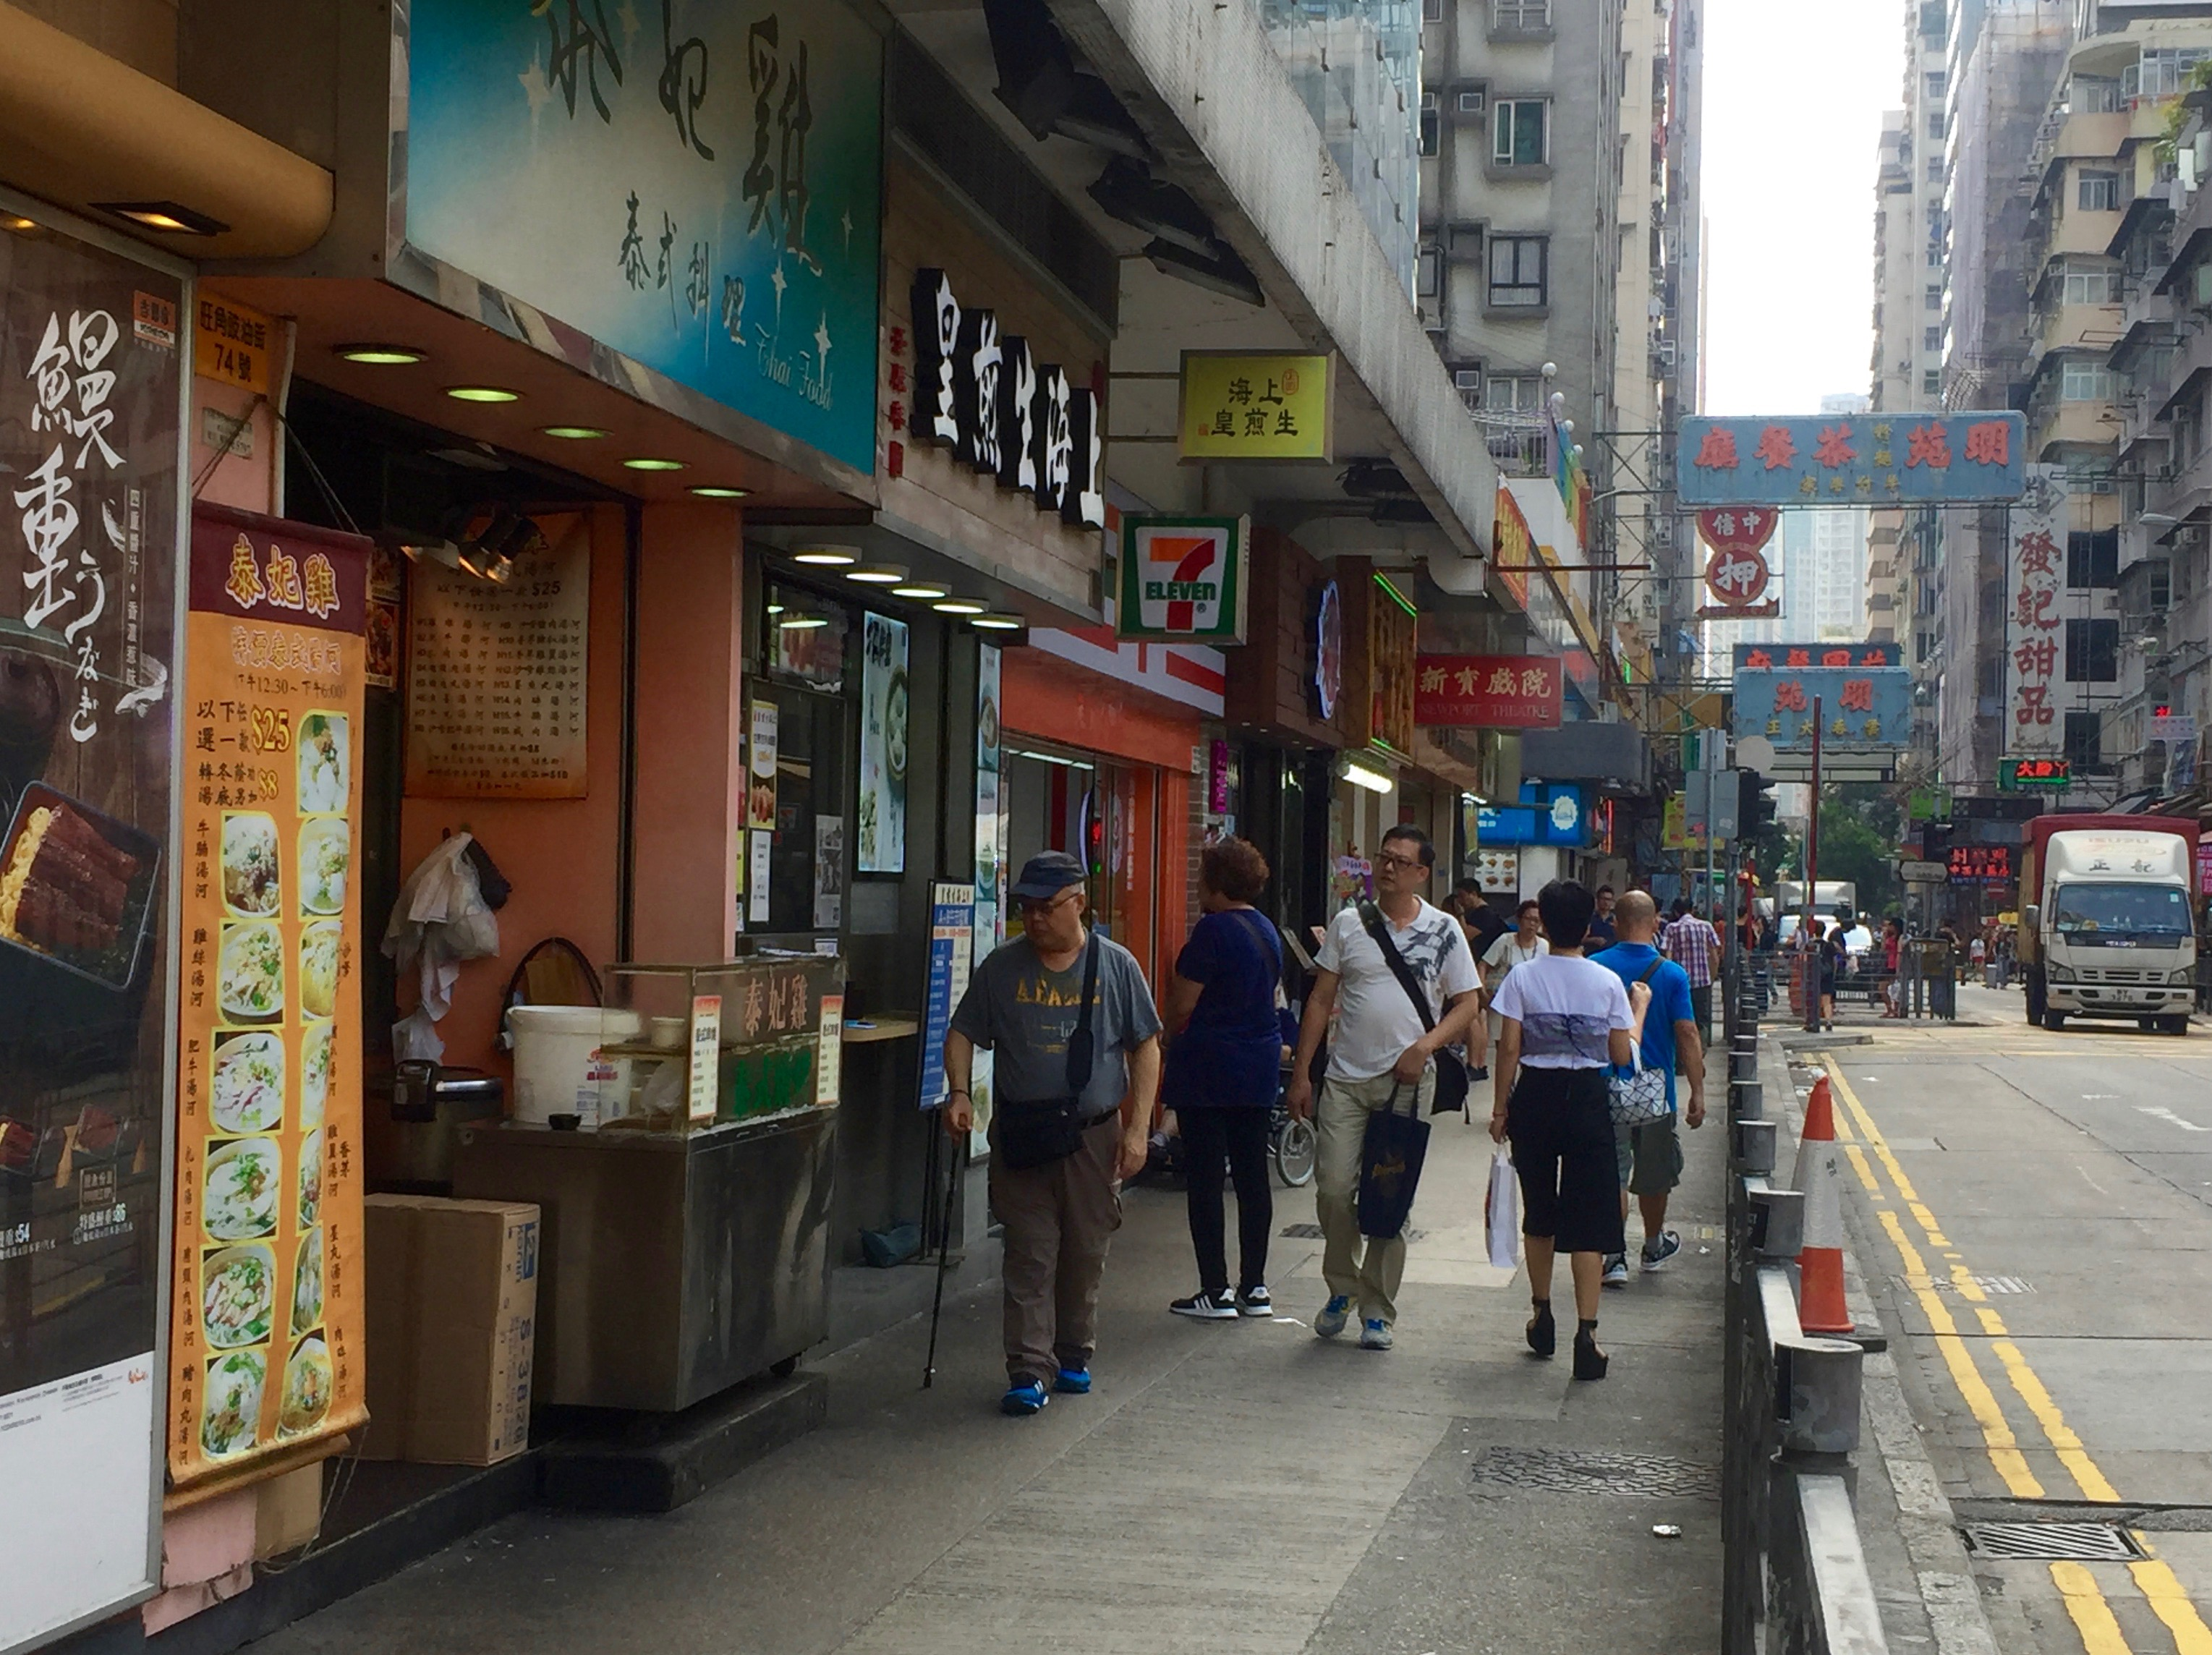 Mong Kok Soy Street HK packed with restaurants, cafes, coffee shops takeaway shops